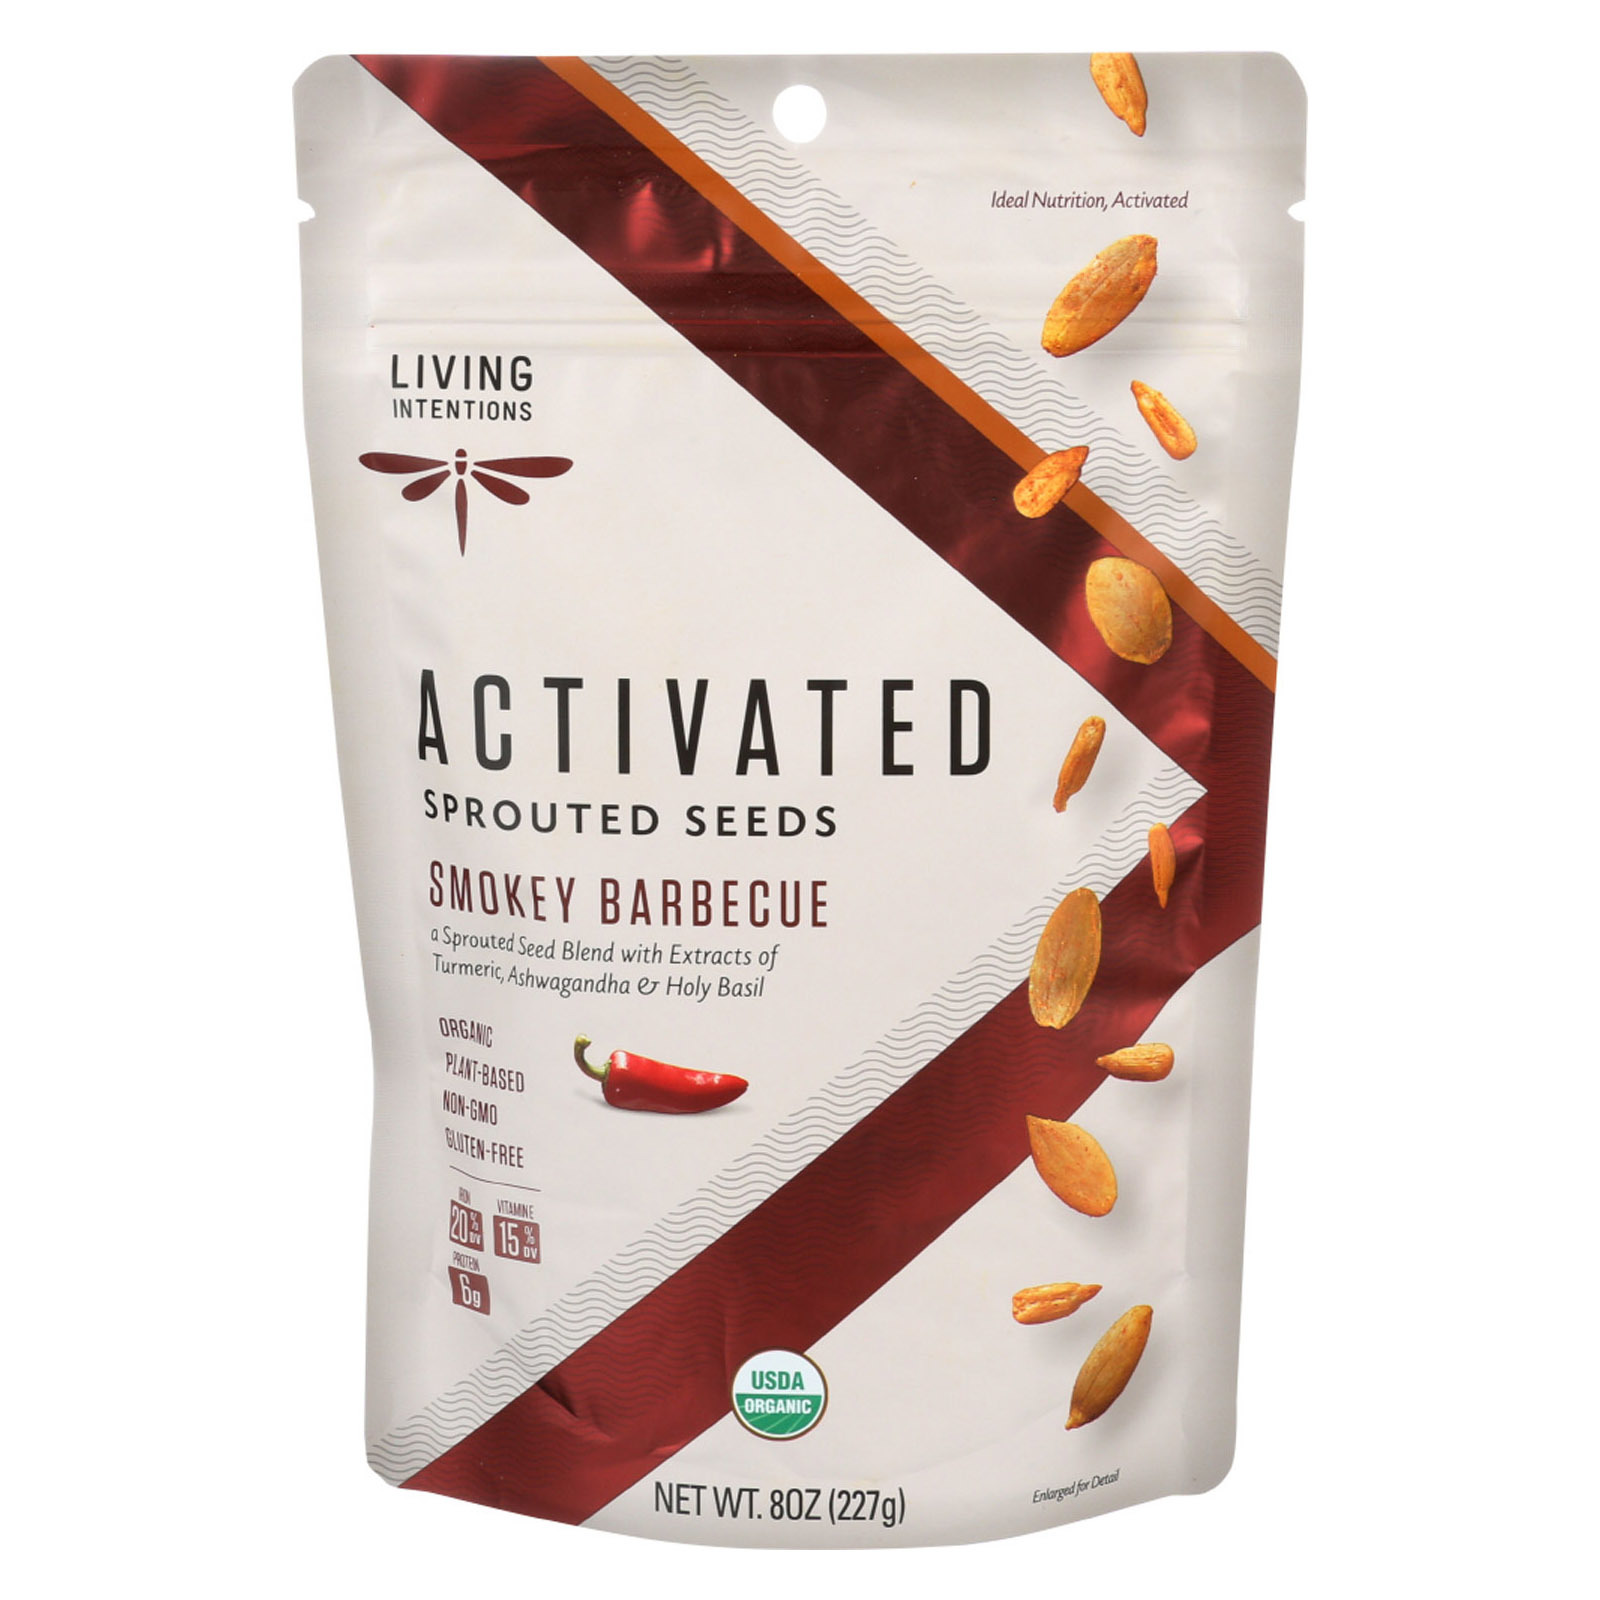 Living Intentions Organic Sprouted Seeds - Pumpkin Sunflower - Case of 6 - 8 oz.